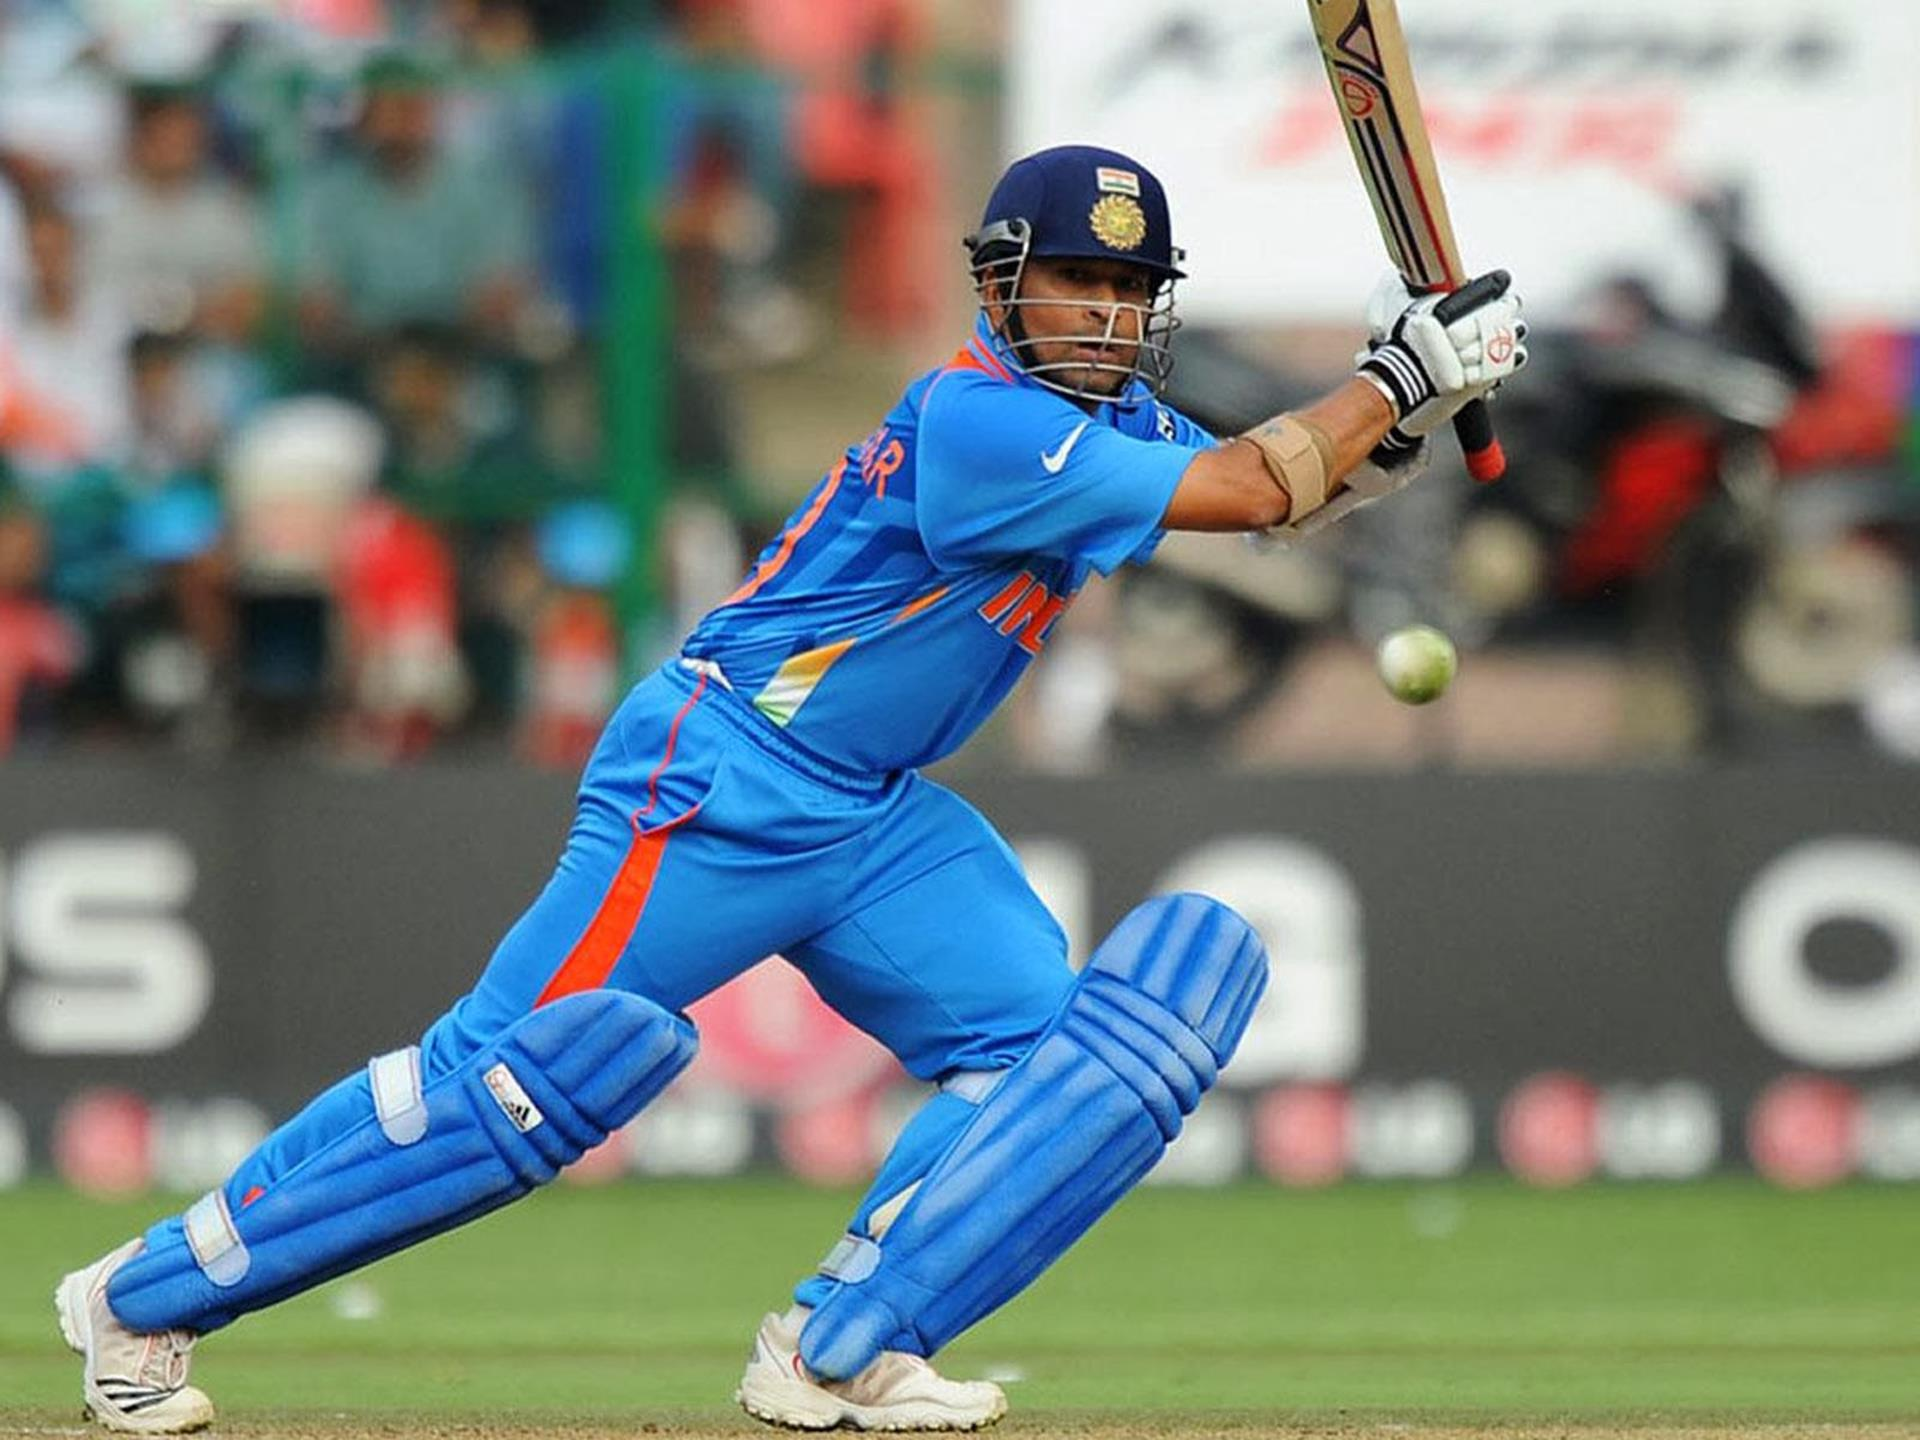 my favourite sportsperson sachin tendulkar essays Short essay on sachin tendulkar category: essays, paragraphs and articles on october 13, 2018 by aparna if one is living in india and he is saying that he doesn't know about sachin tendulkar, then he is surely lying.